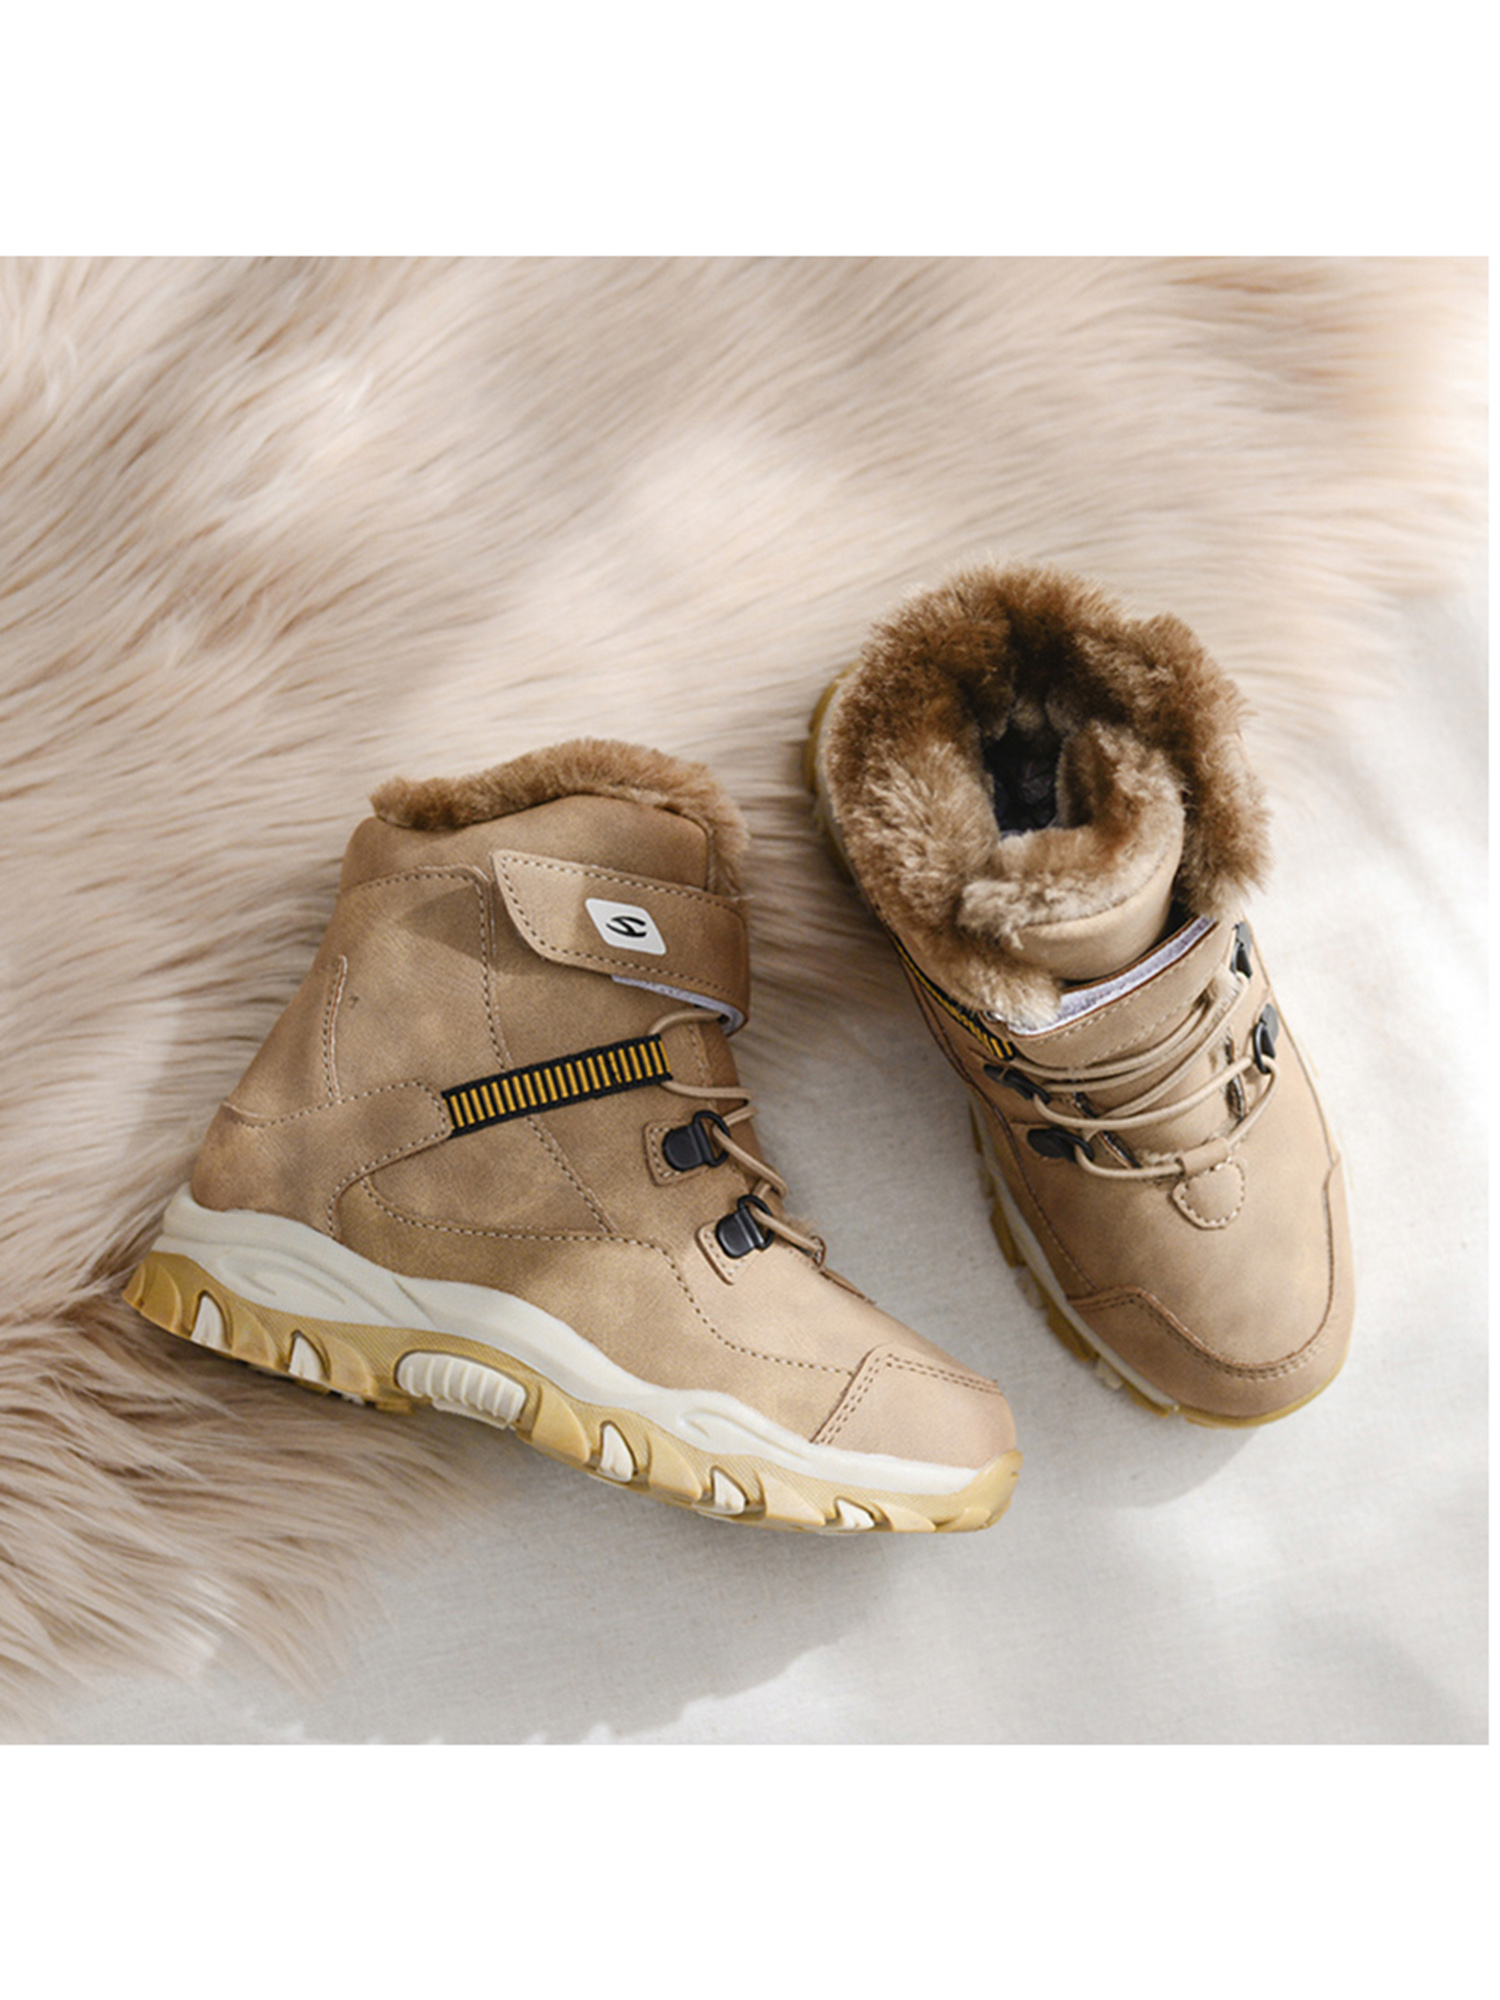 Kids Toddler Boys Winter Retro Fur Lined Snow Ankle Boots Warm Formal Shoes